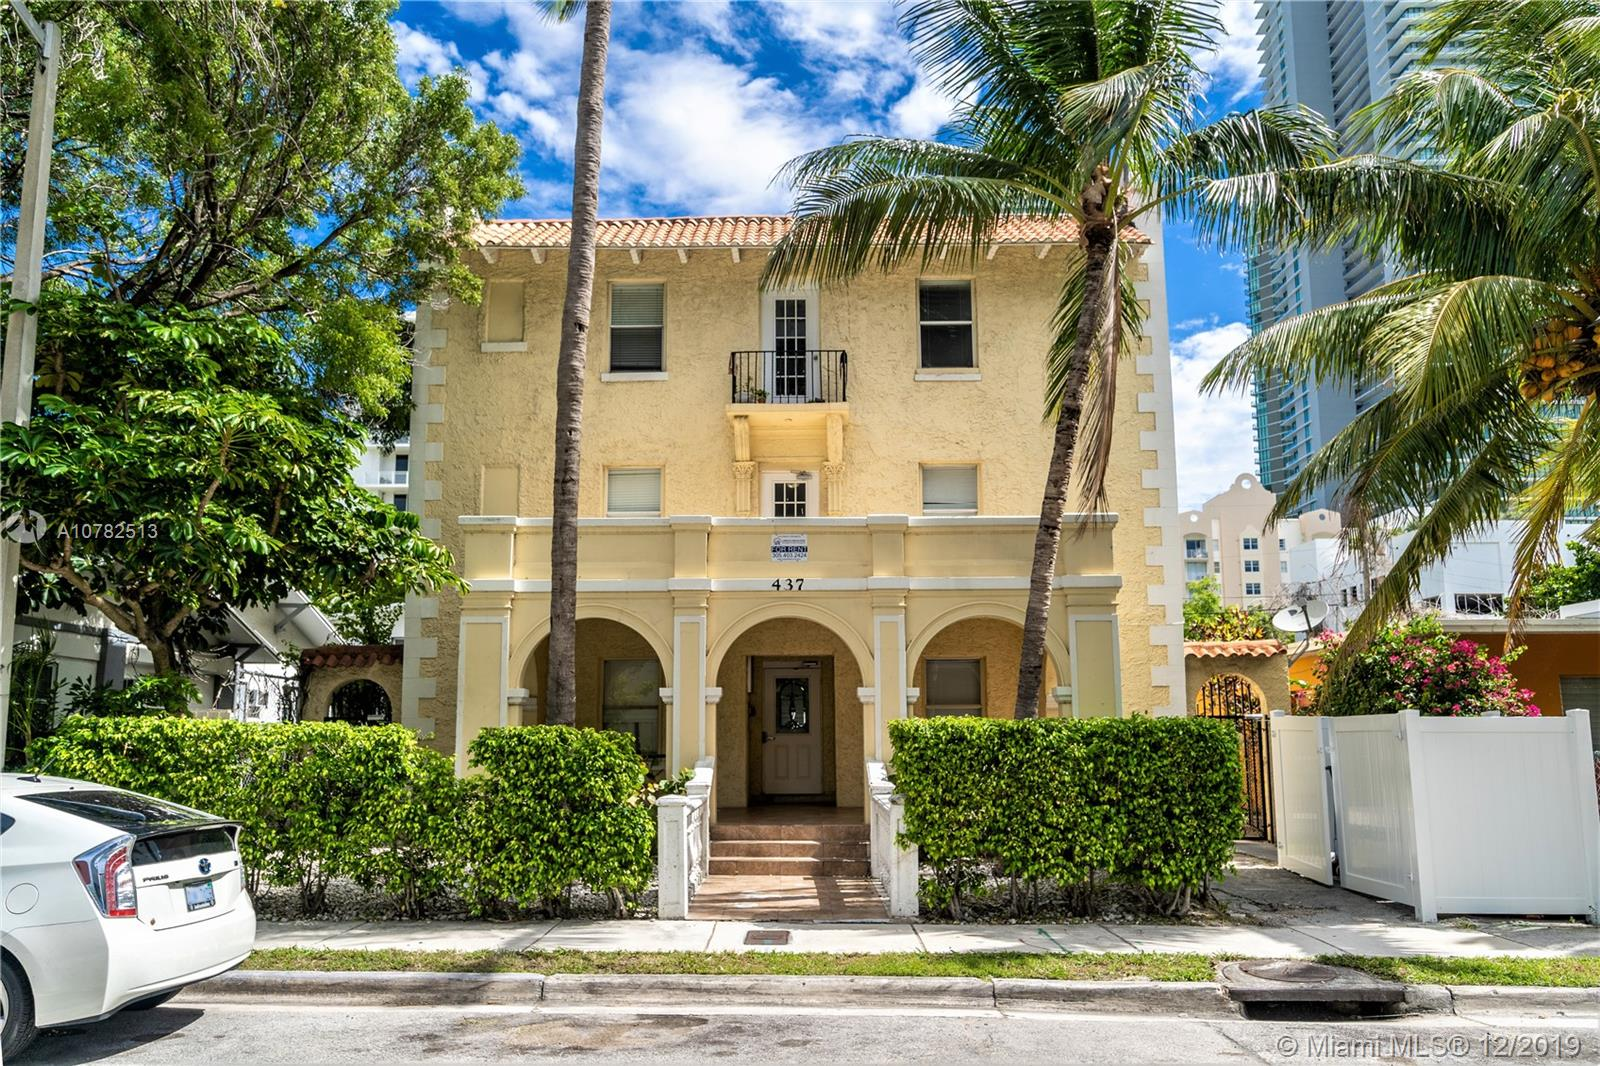 437 NE 29 ST #205 For Sale A10782513, FL